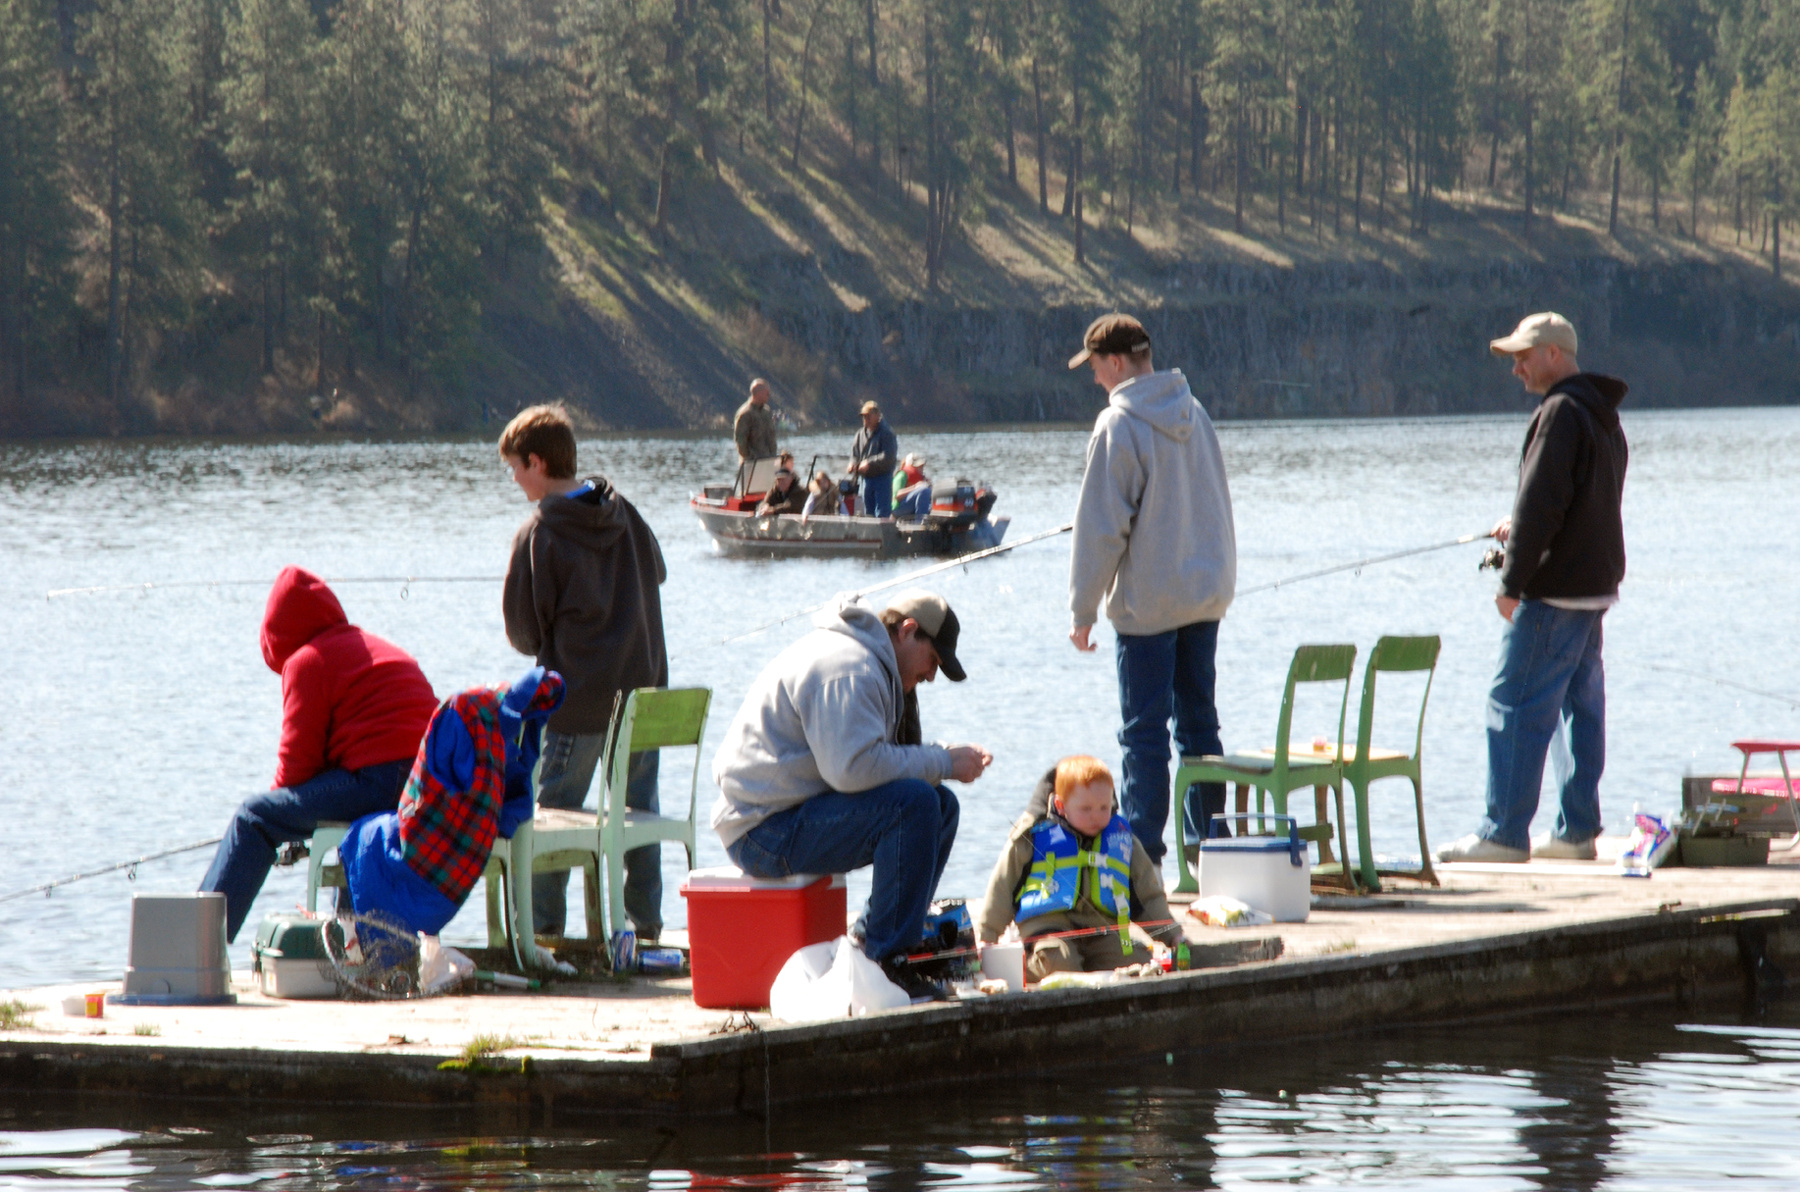 Lowland lakes stocked with trout offerings the spokesman for Washington fishing season